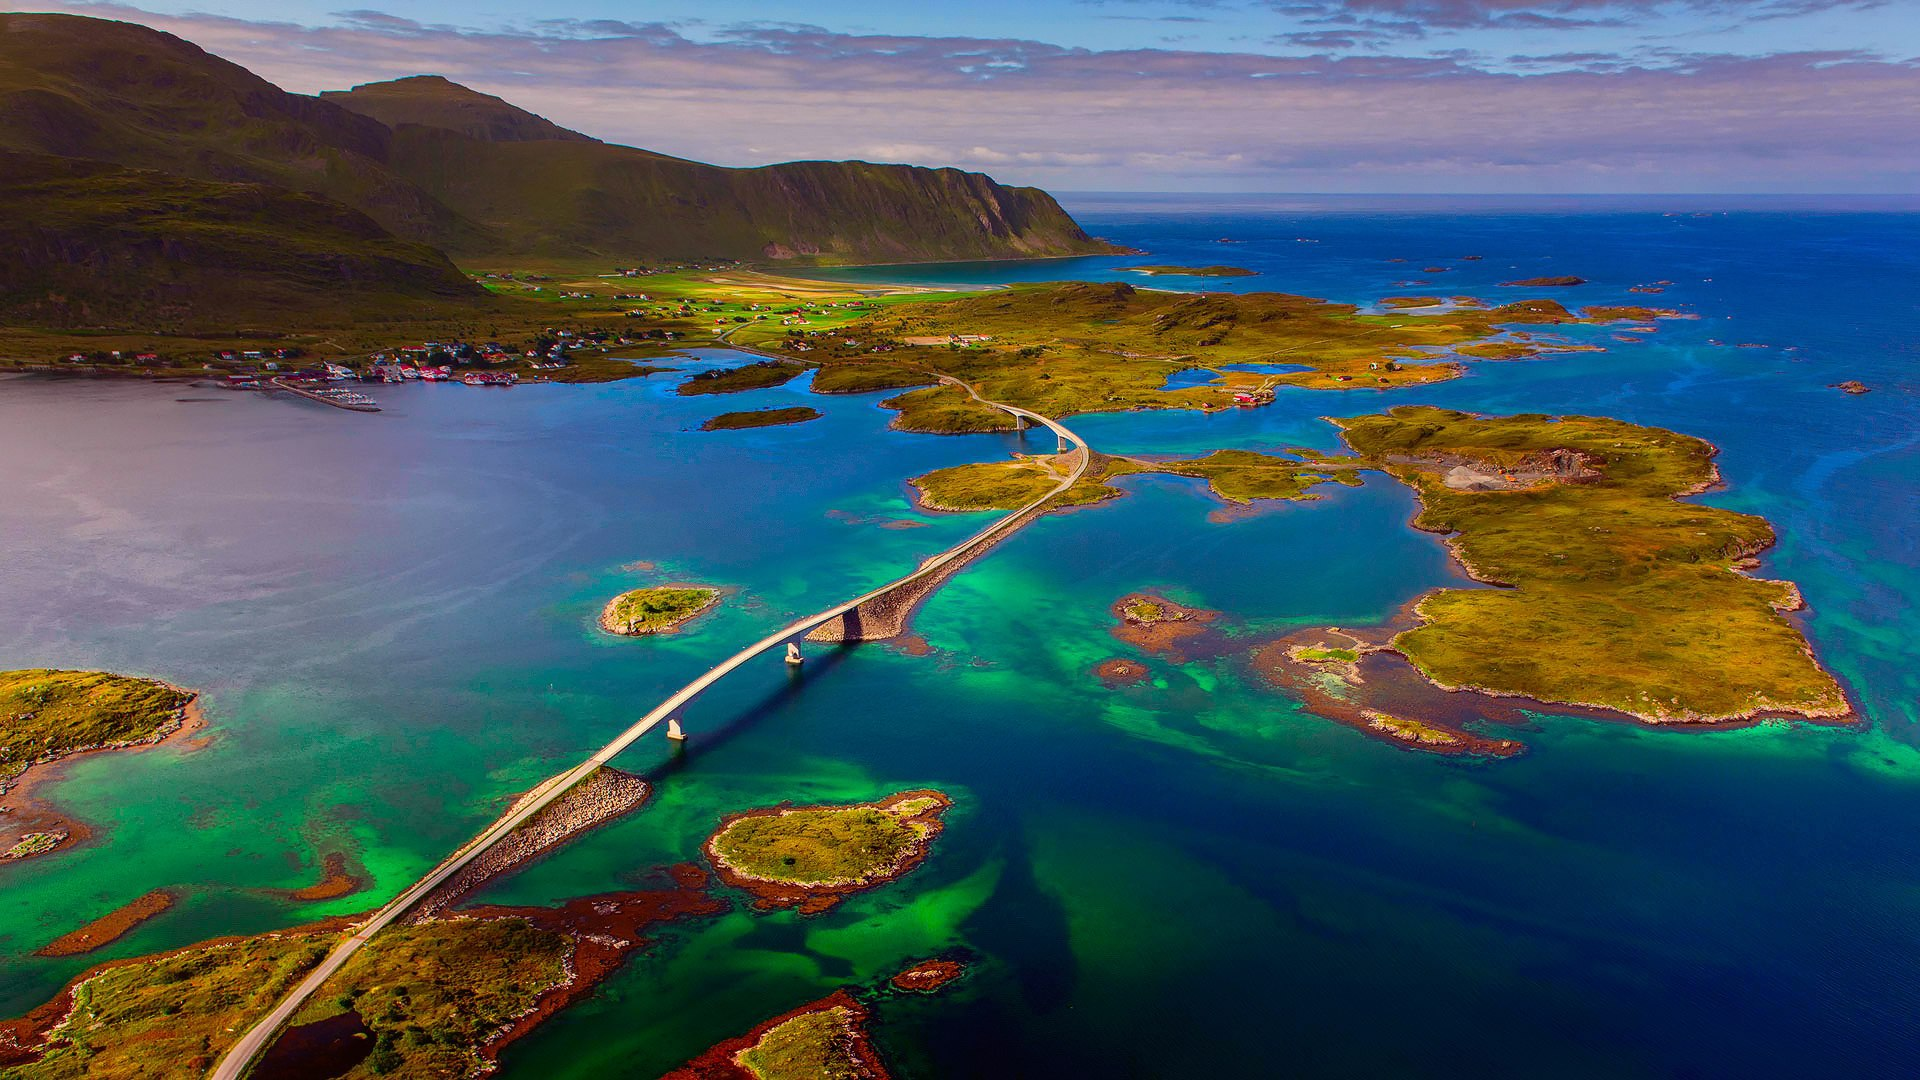 Bridge in lofoten islands